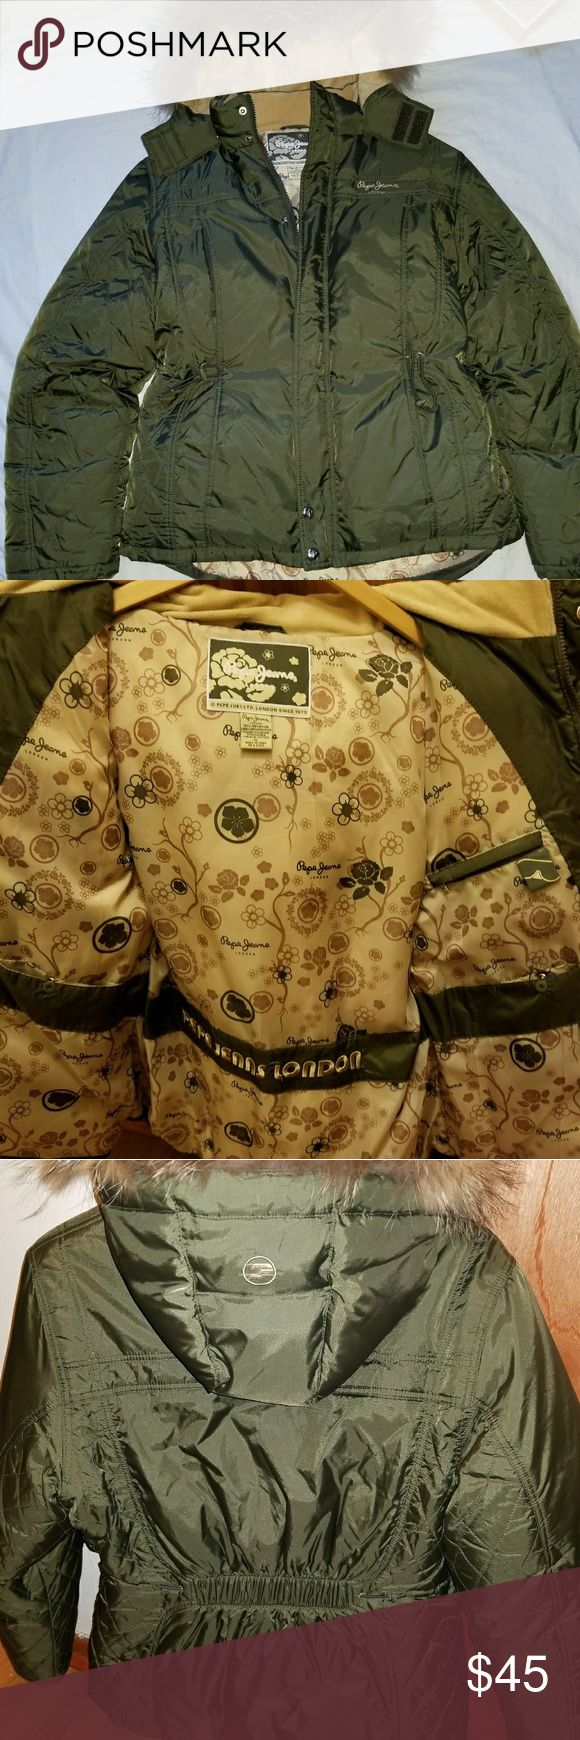 Pepe Jean London Winter Jacket Women fall/winter jacket. Filling: Down feather, coyote fur hood trim, draw string at the waste,  nice hardware. Jacket will keep you warm.  Very lightly worn once. Excellent condition. Jackets & Coats